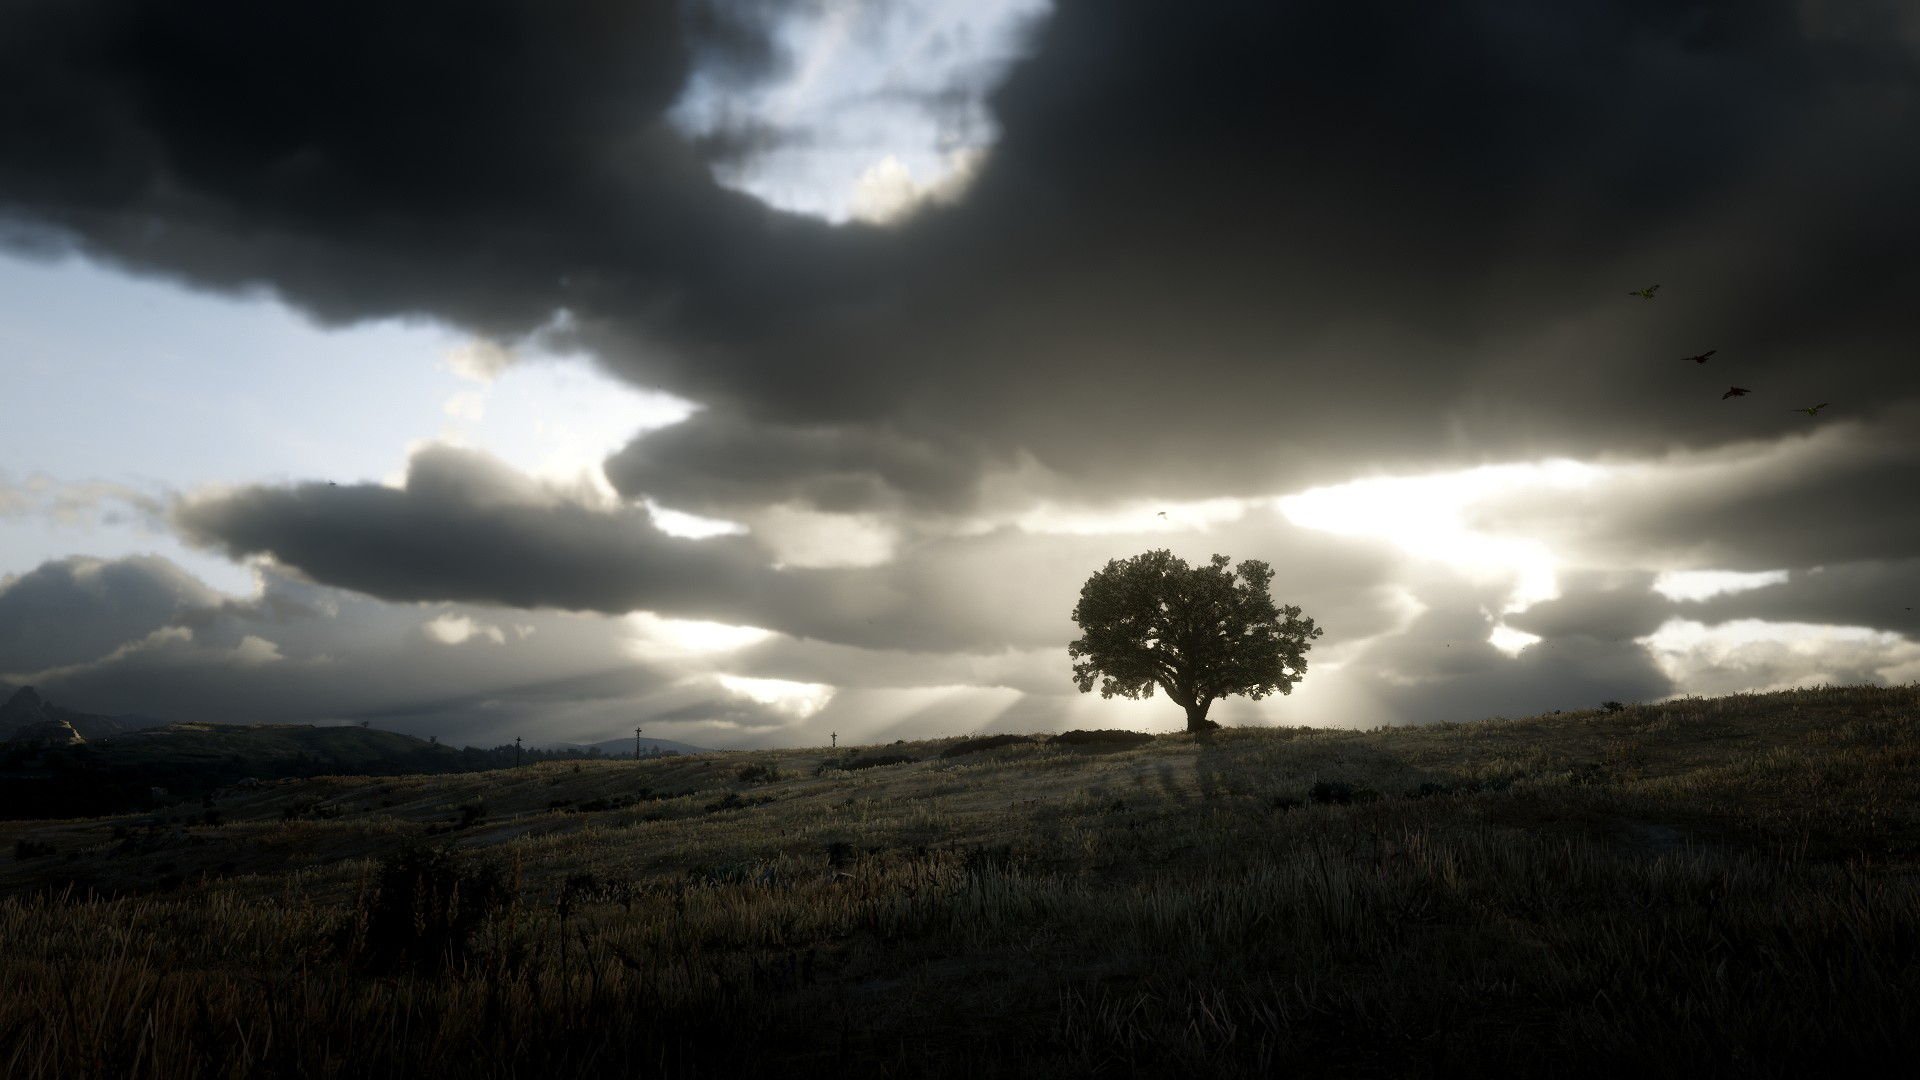 Weather's changing at the Marston Ranch